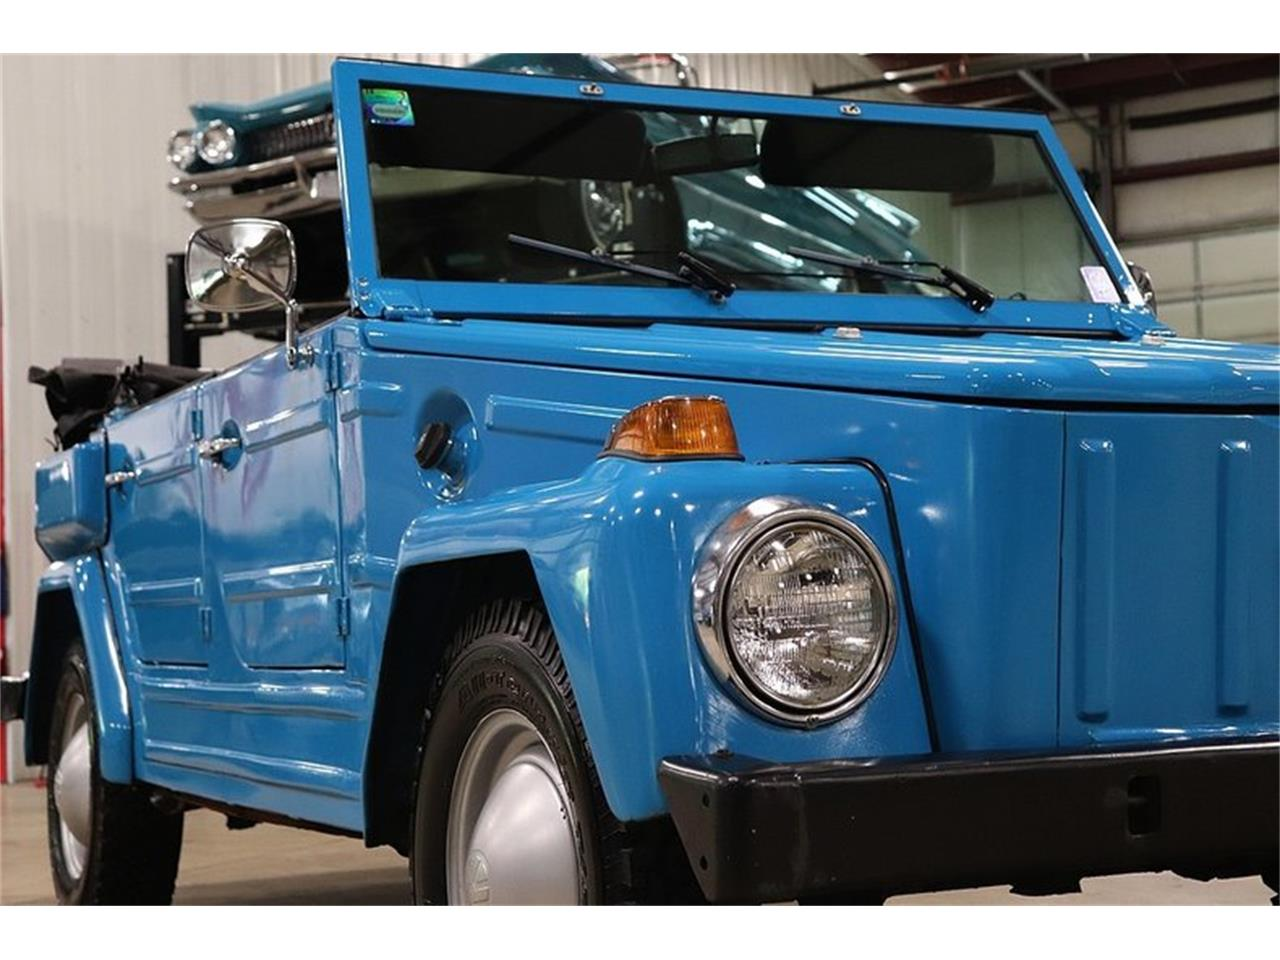 1973 Volkswagen Thing for sale in Kentwood, MI – photo 40